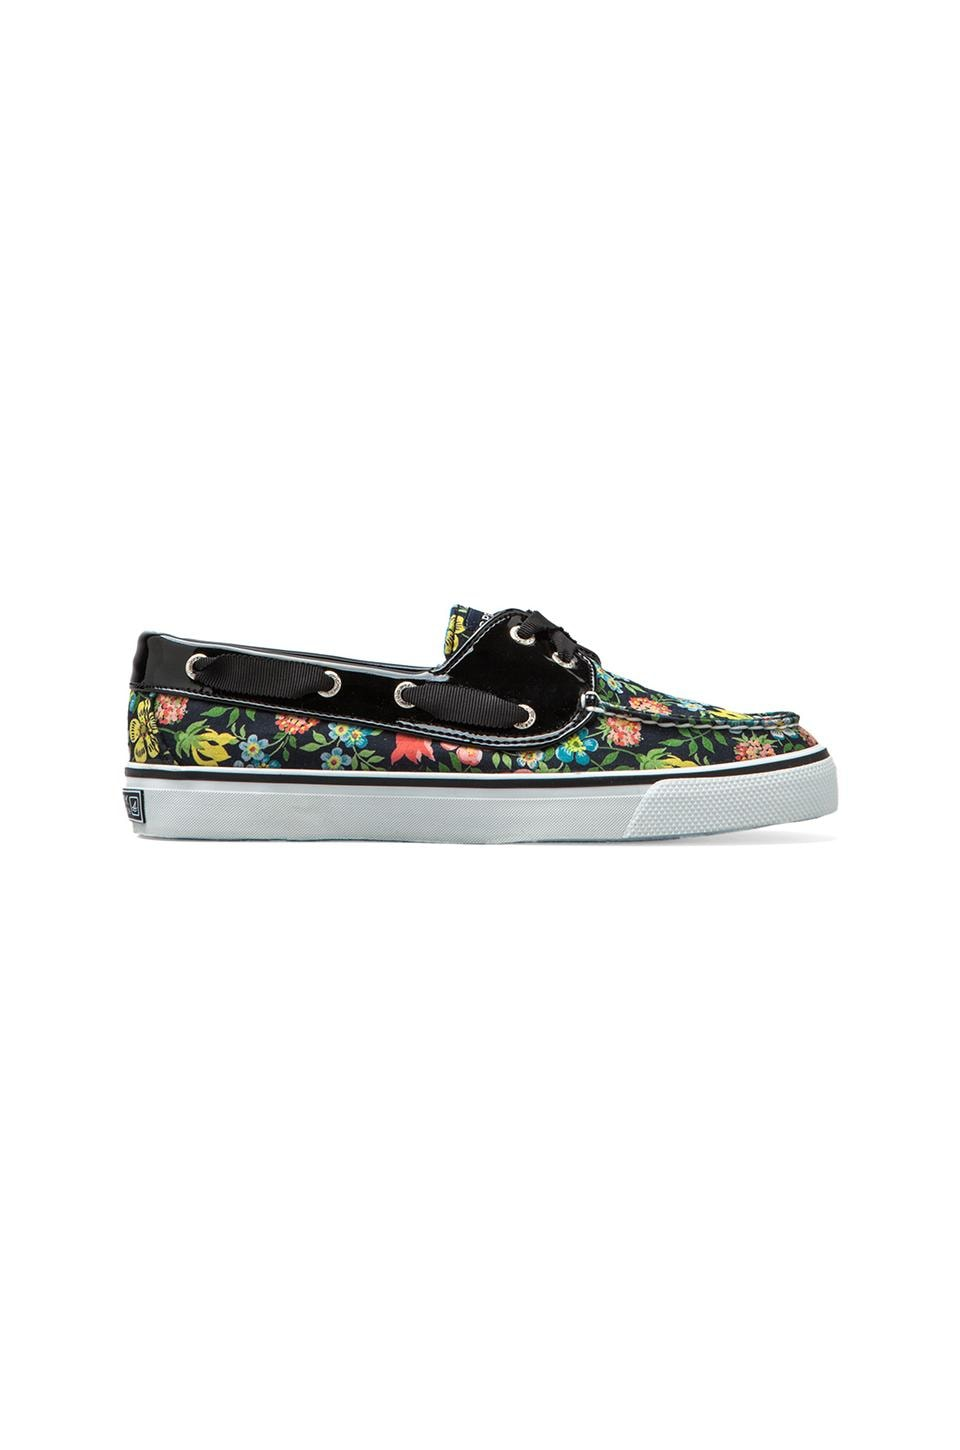 Sperry Top-Sider Bahama 2-Eye in Black Liberty Floral